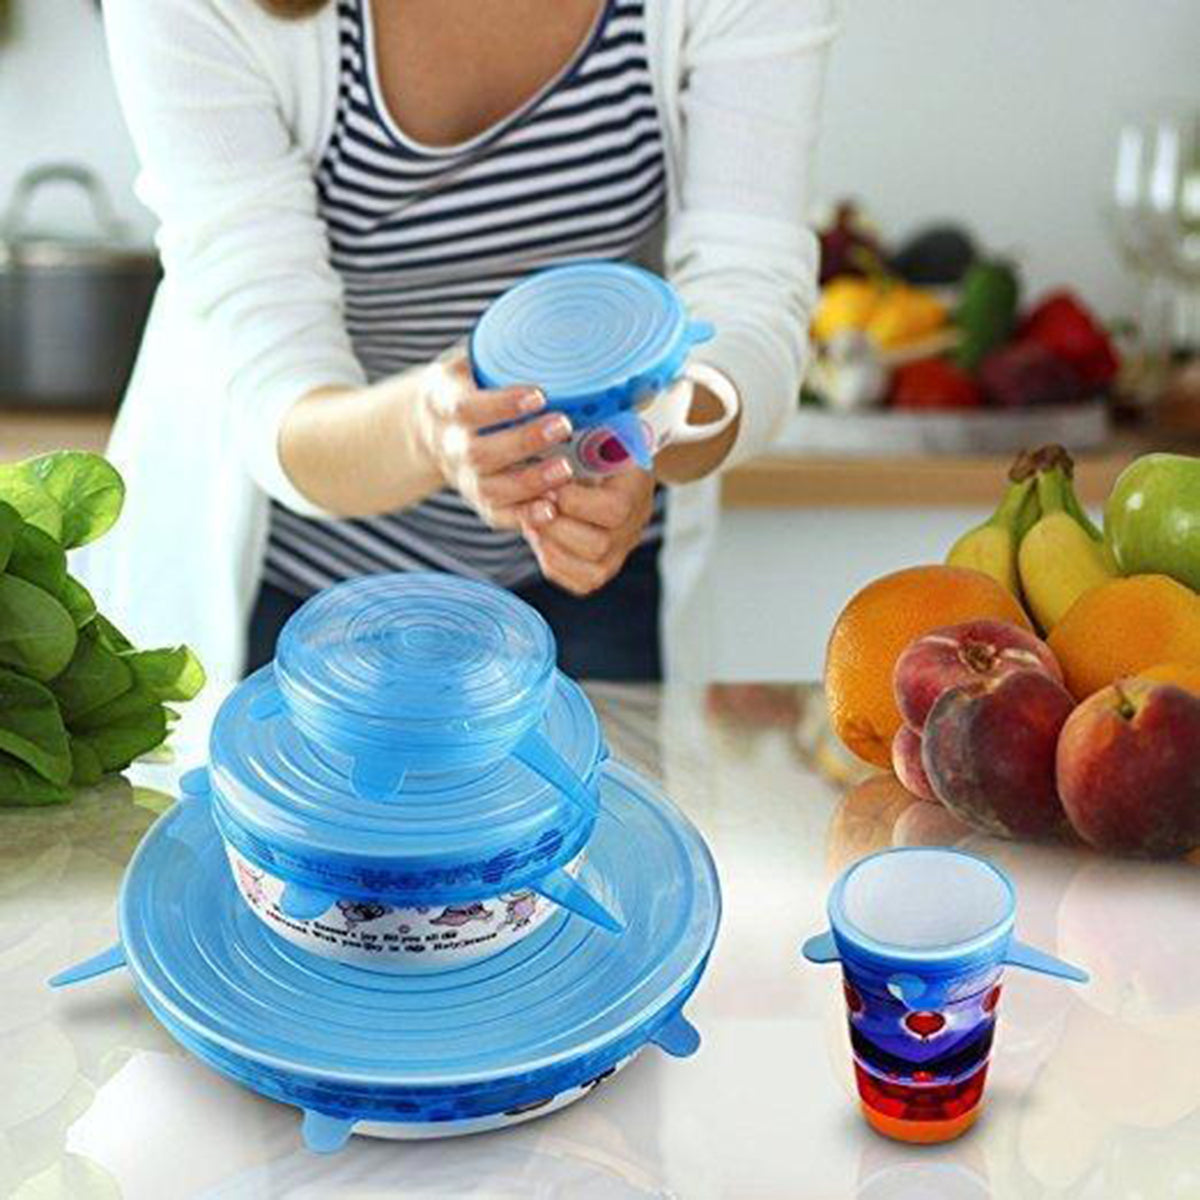 Vacuum silicone stretch lids for food storage